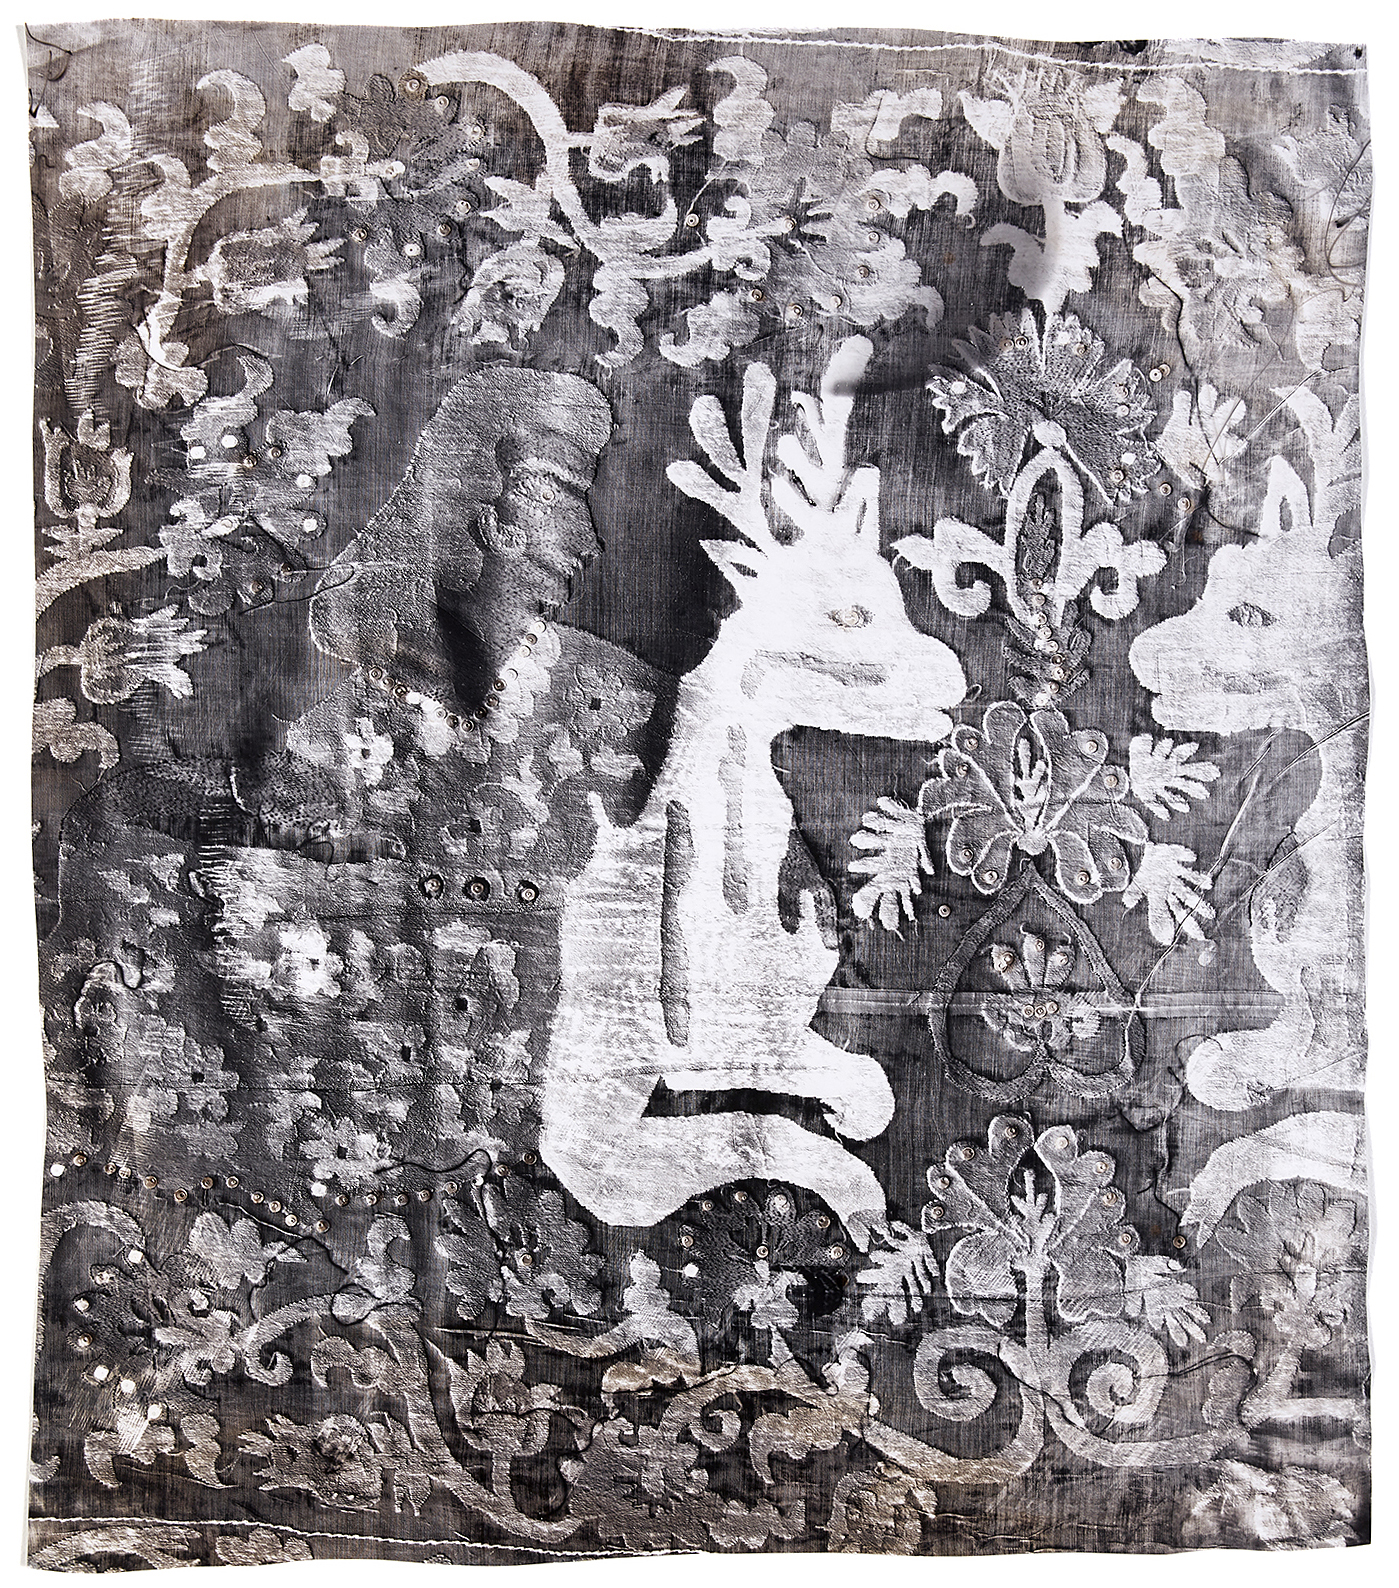 KLEA McKENNA  Prophecy , 2019 Unique photographic relief. Photogram on gelatin silver fiber paper. Copper and Sepia toned. Impression of a hand embroidered tapestry or Suzani. Uzbekistan, Boysun region. Circa 1960's. 42.5 x 37.5 in; frame: 47 x 42 in